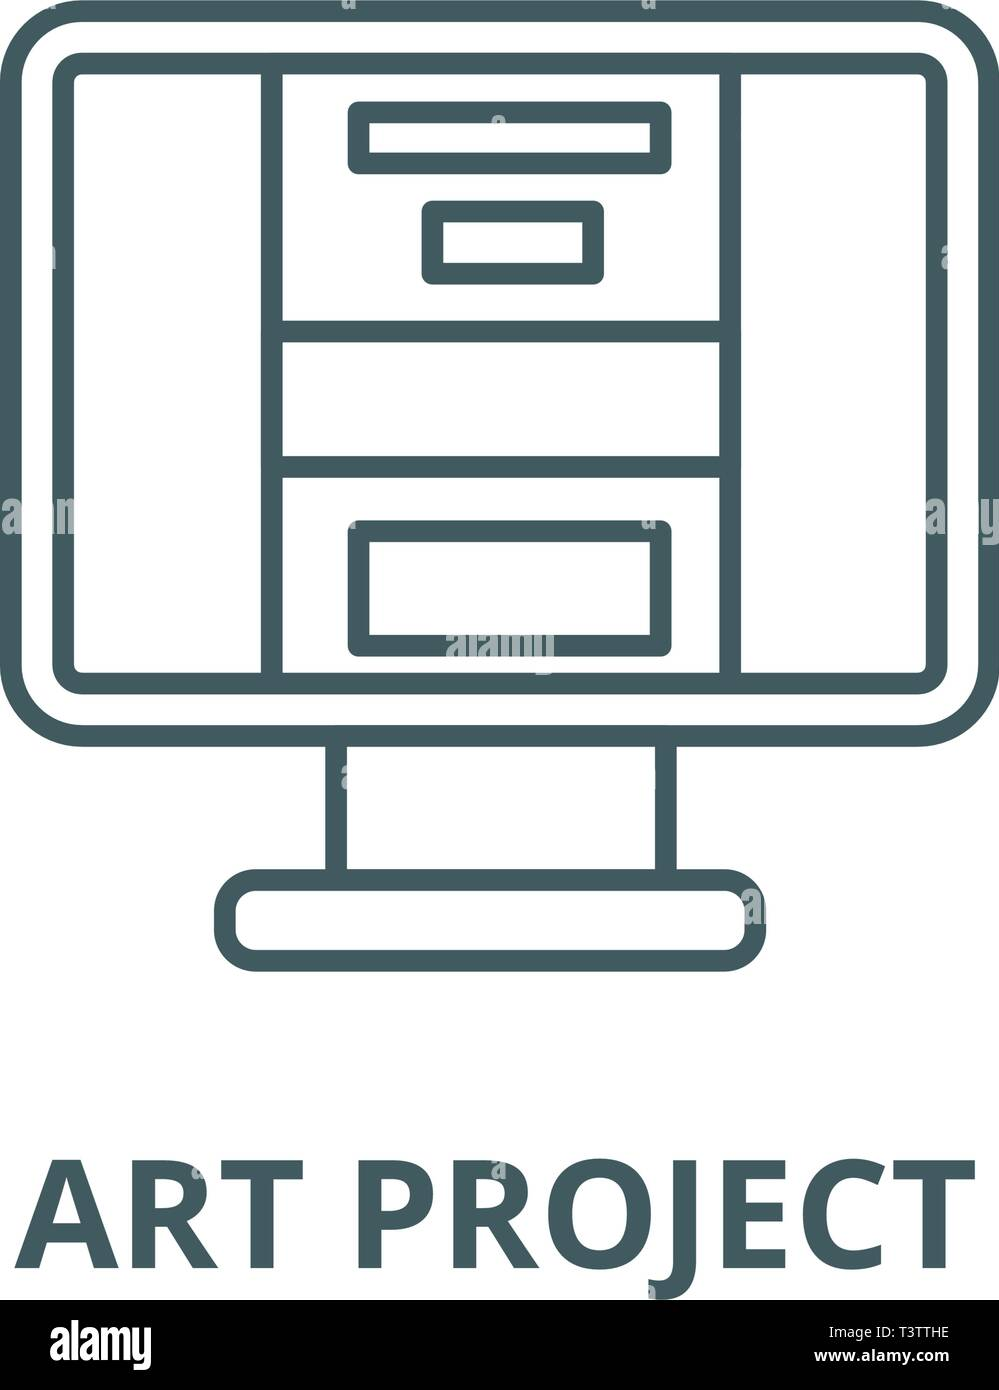 Art project line icon, vector. Art project outline sign, concept symbol, flat illustration - Stock Vector